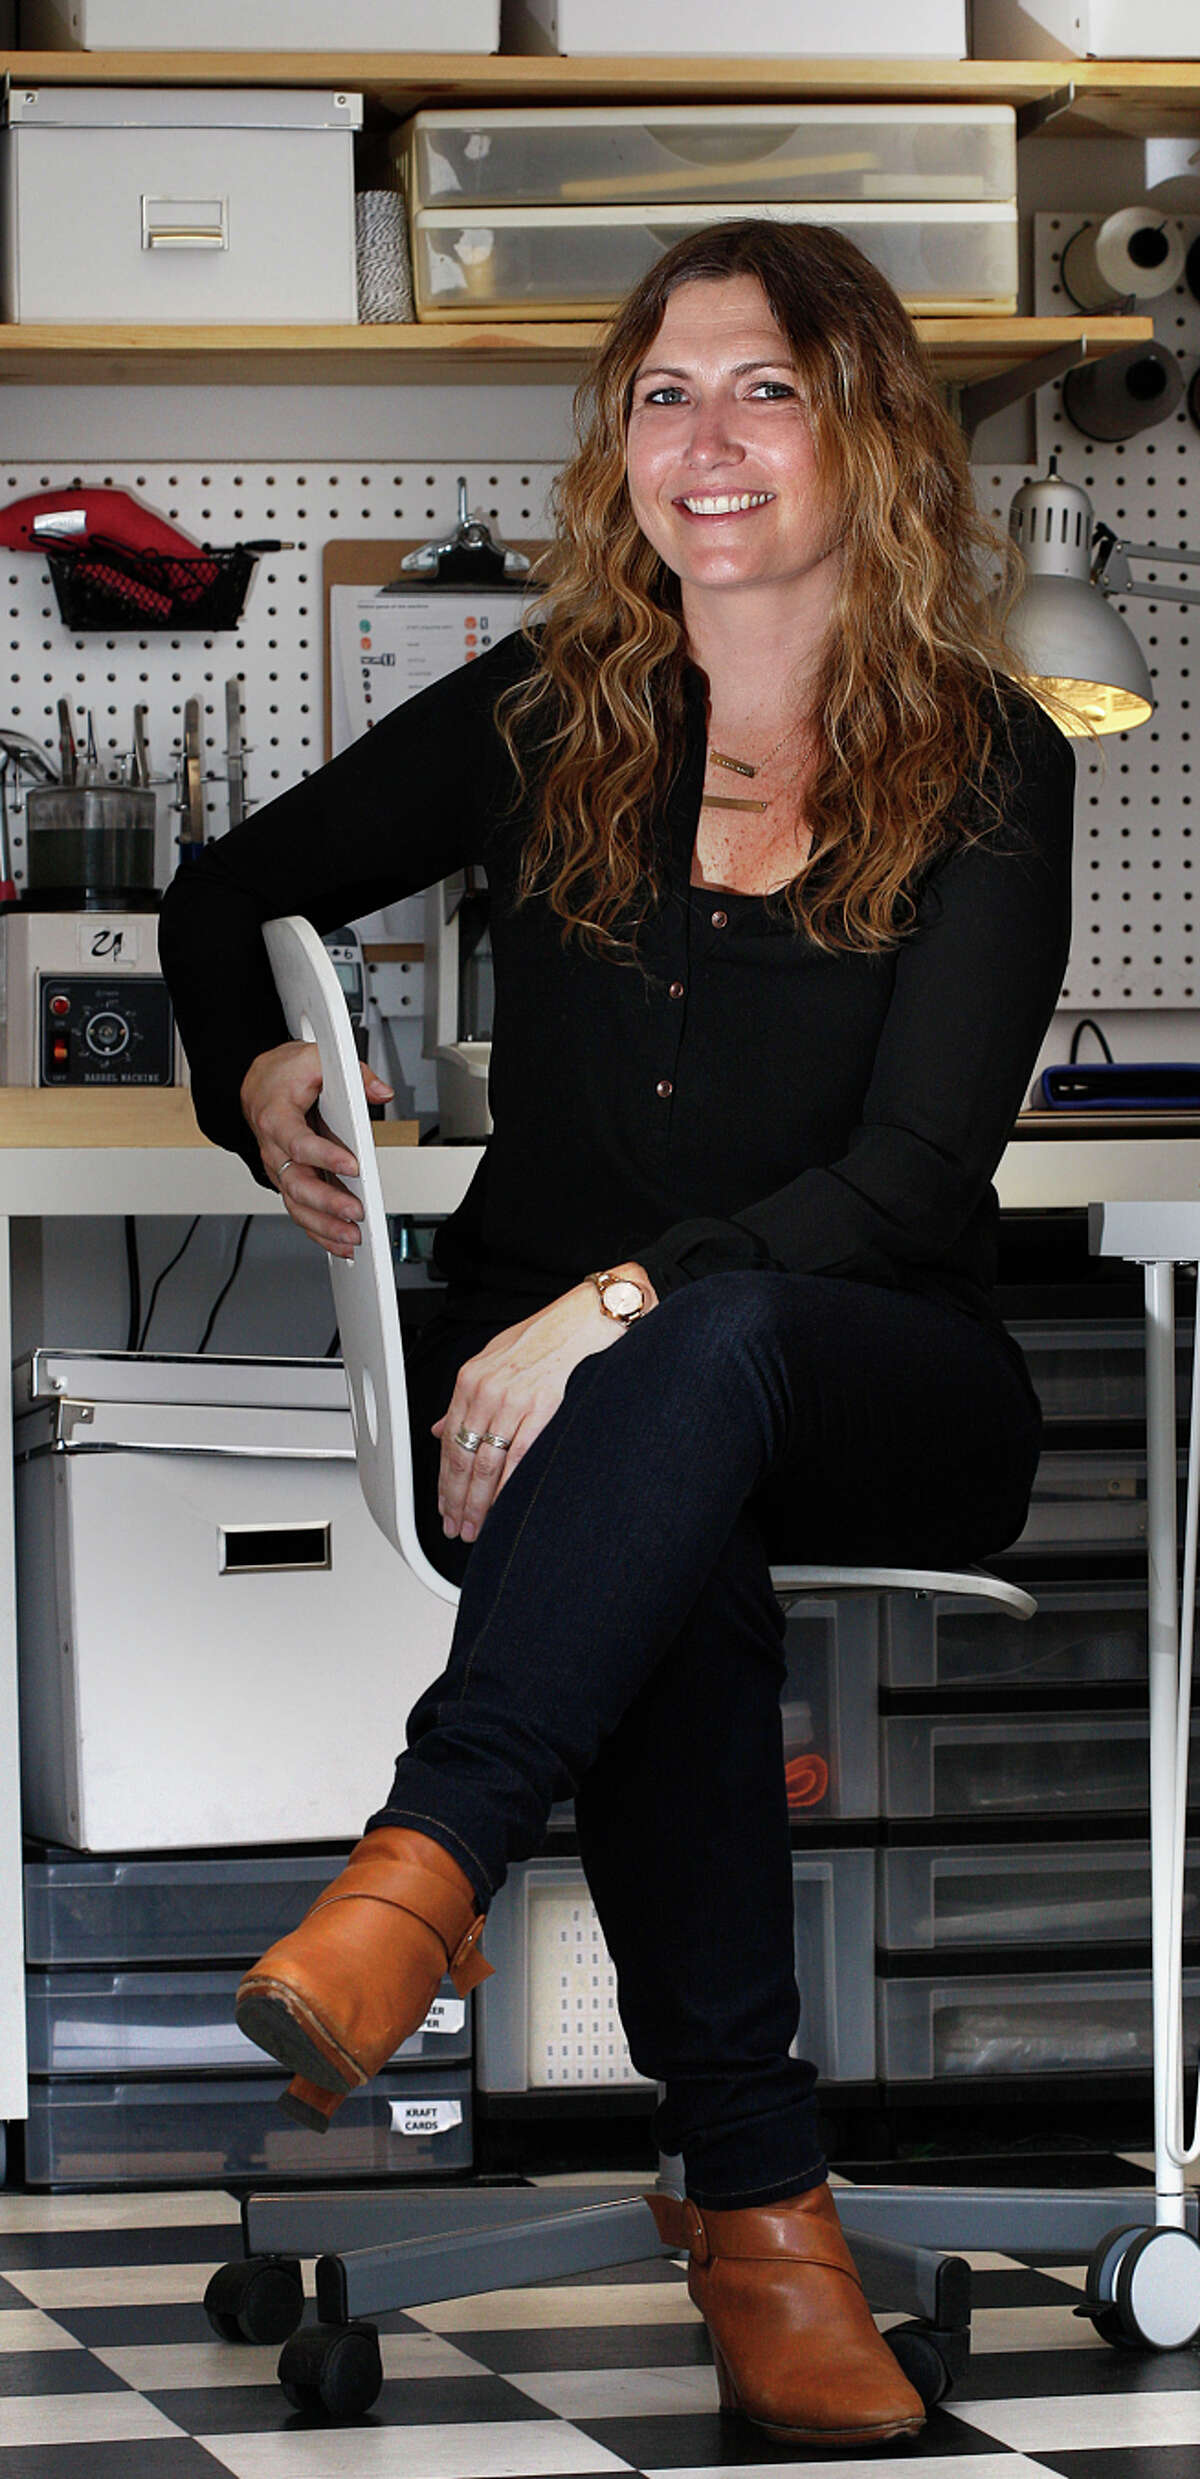 Jewelry maker Molly Cruit of the Urban Smith in her Mission District studio.